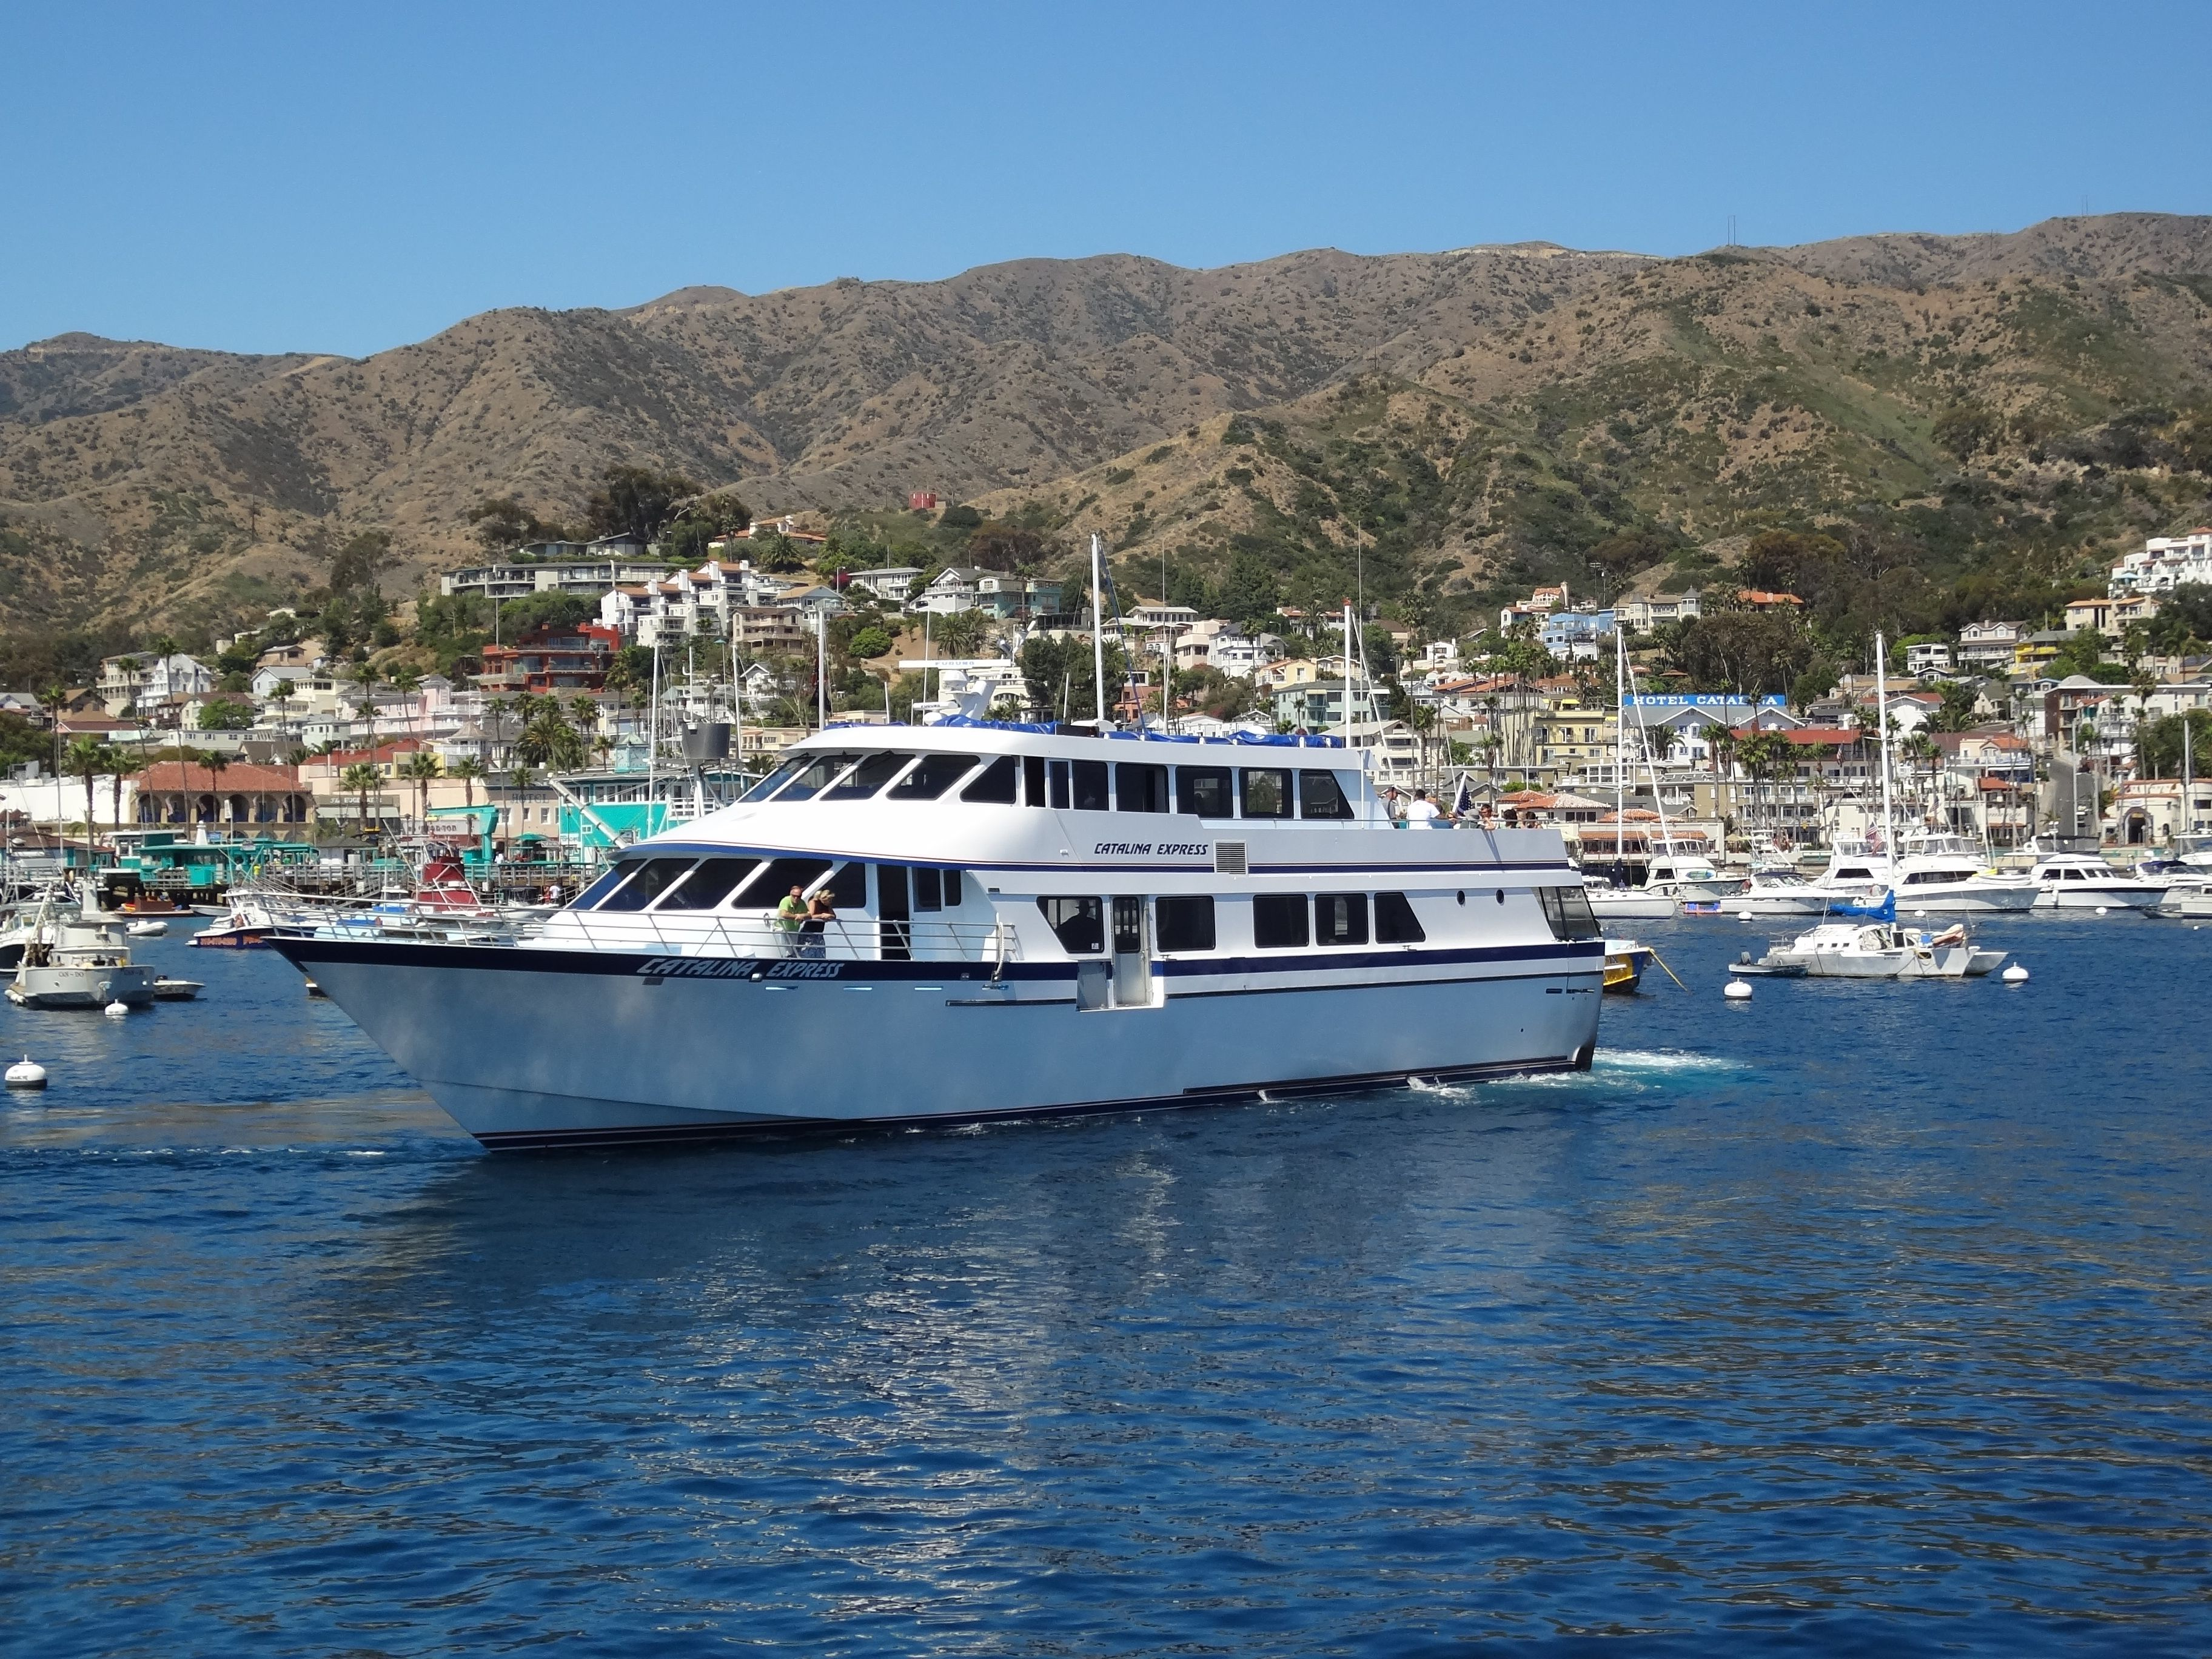 Catalina Island Seaplane Tour Highlights A Seaplane Safari of Sights Take off & landing from the clear blue waters of picturesque Avalon or White's Landing or depart & return to Long Beach Harbor or Cabrillo Beach in San Pedro, Port of LA.